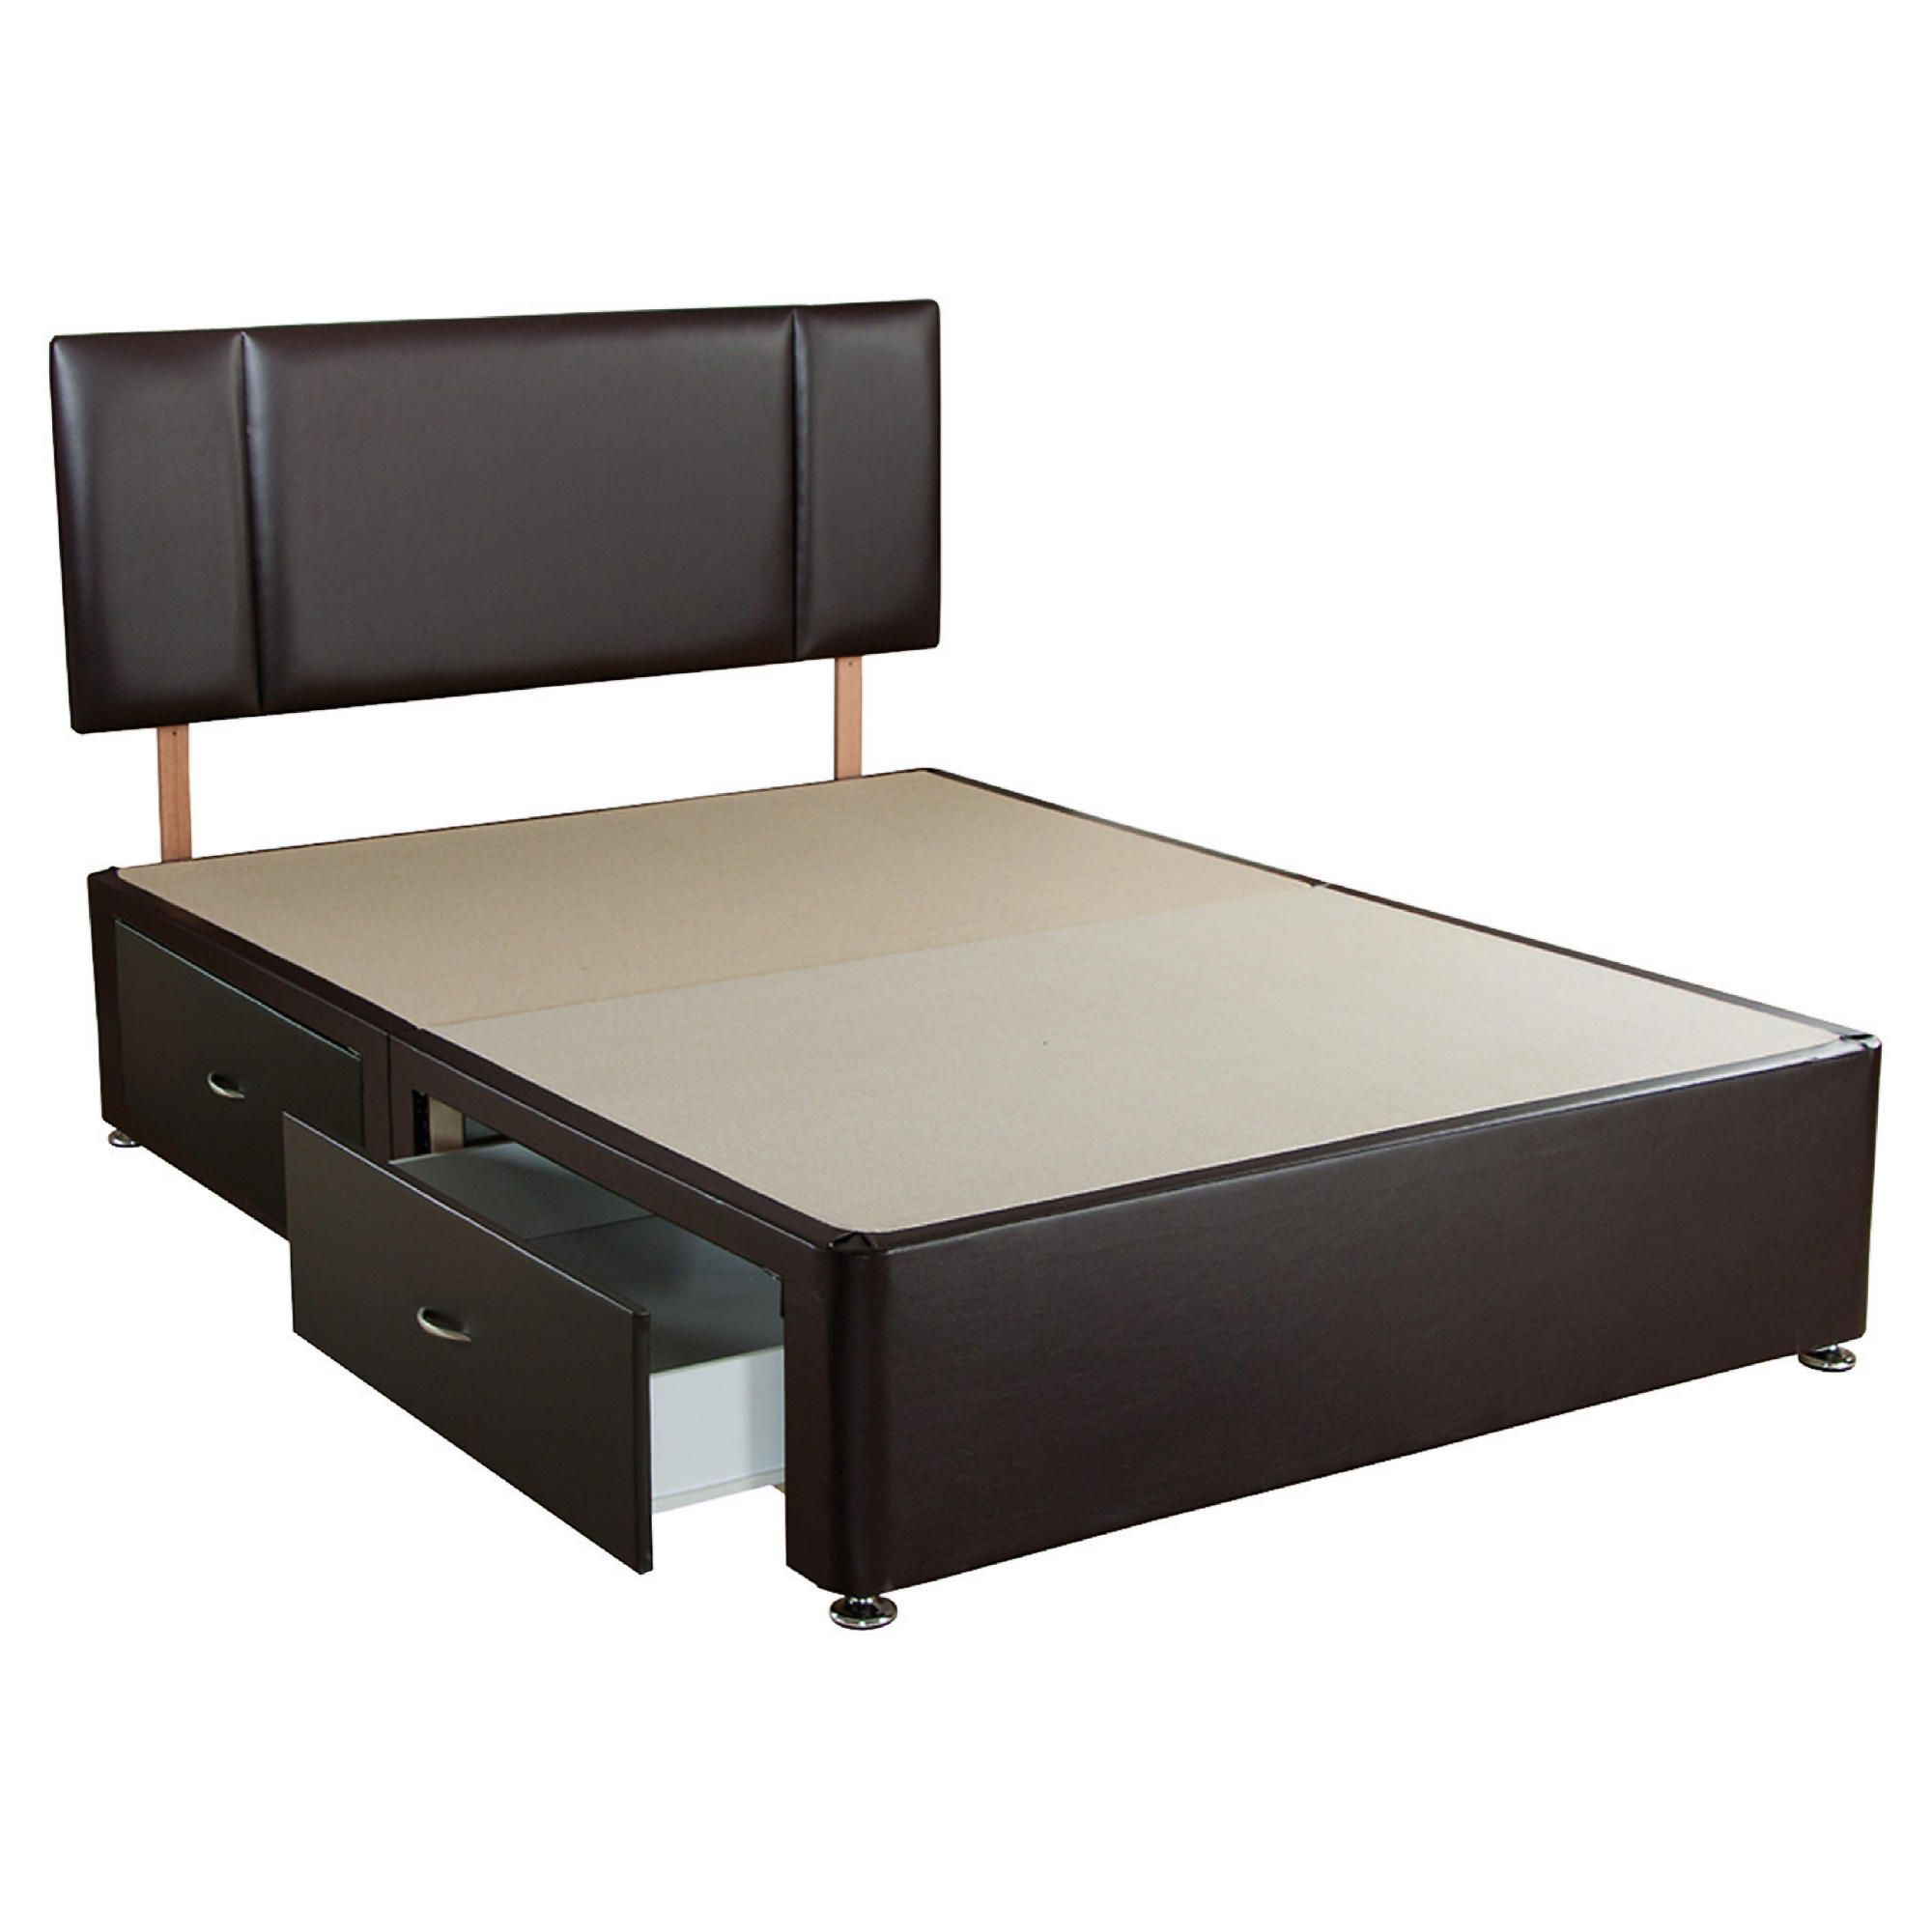 Home and garden furniture airsprung mercury trizone for Double divan with drawers